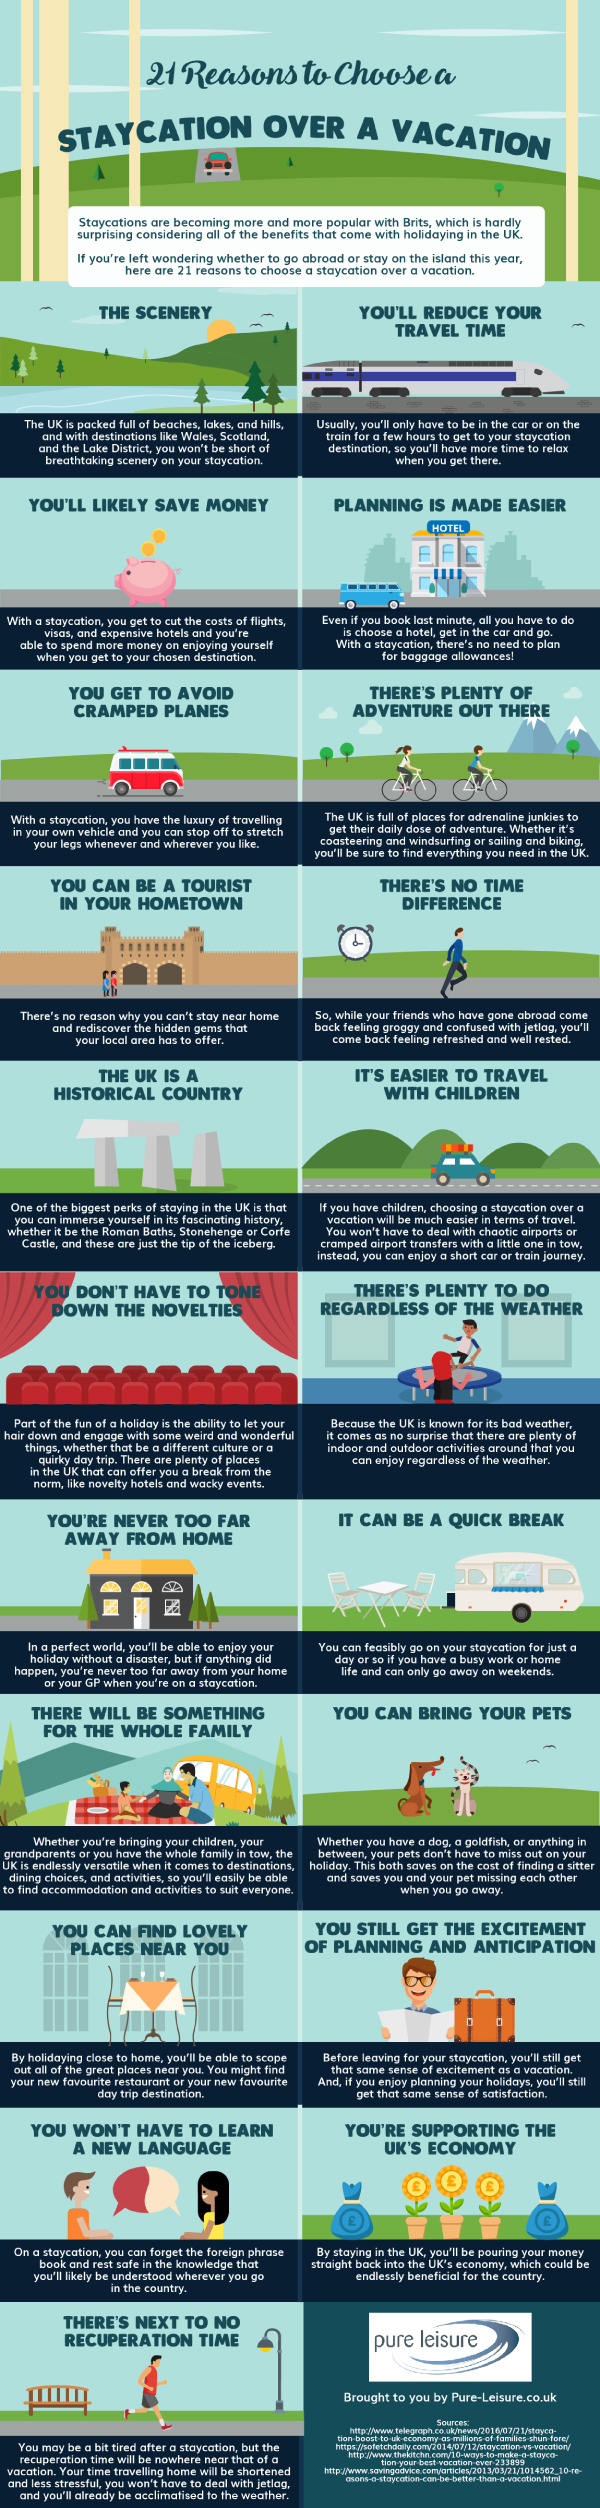 21 Reasons To Choose A Staycation Over A Vacation #infographic